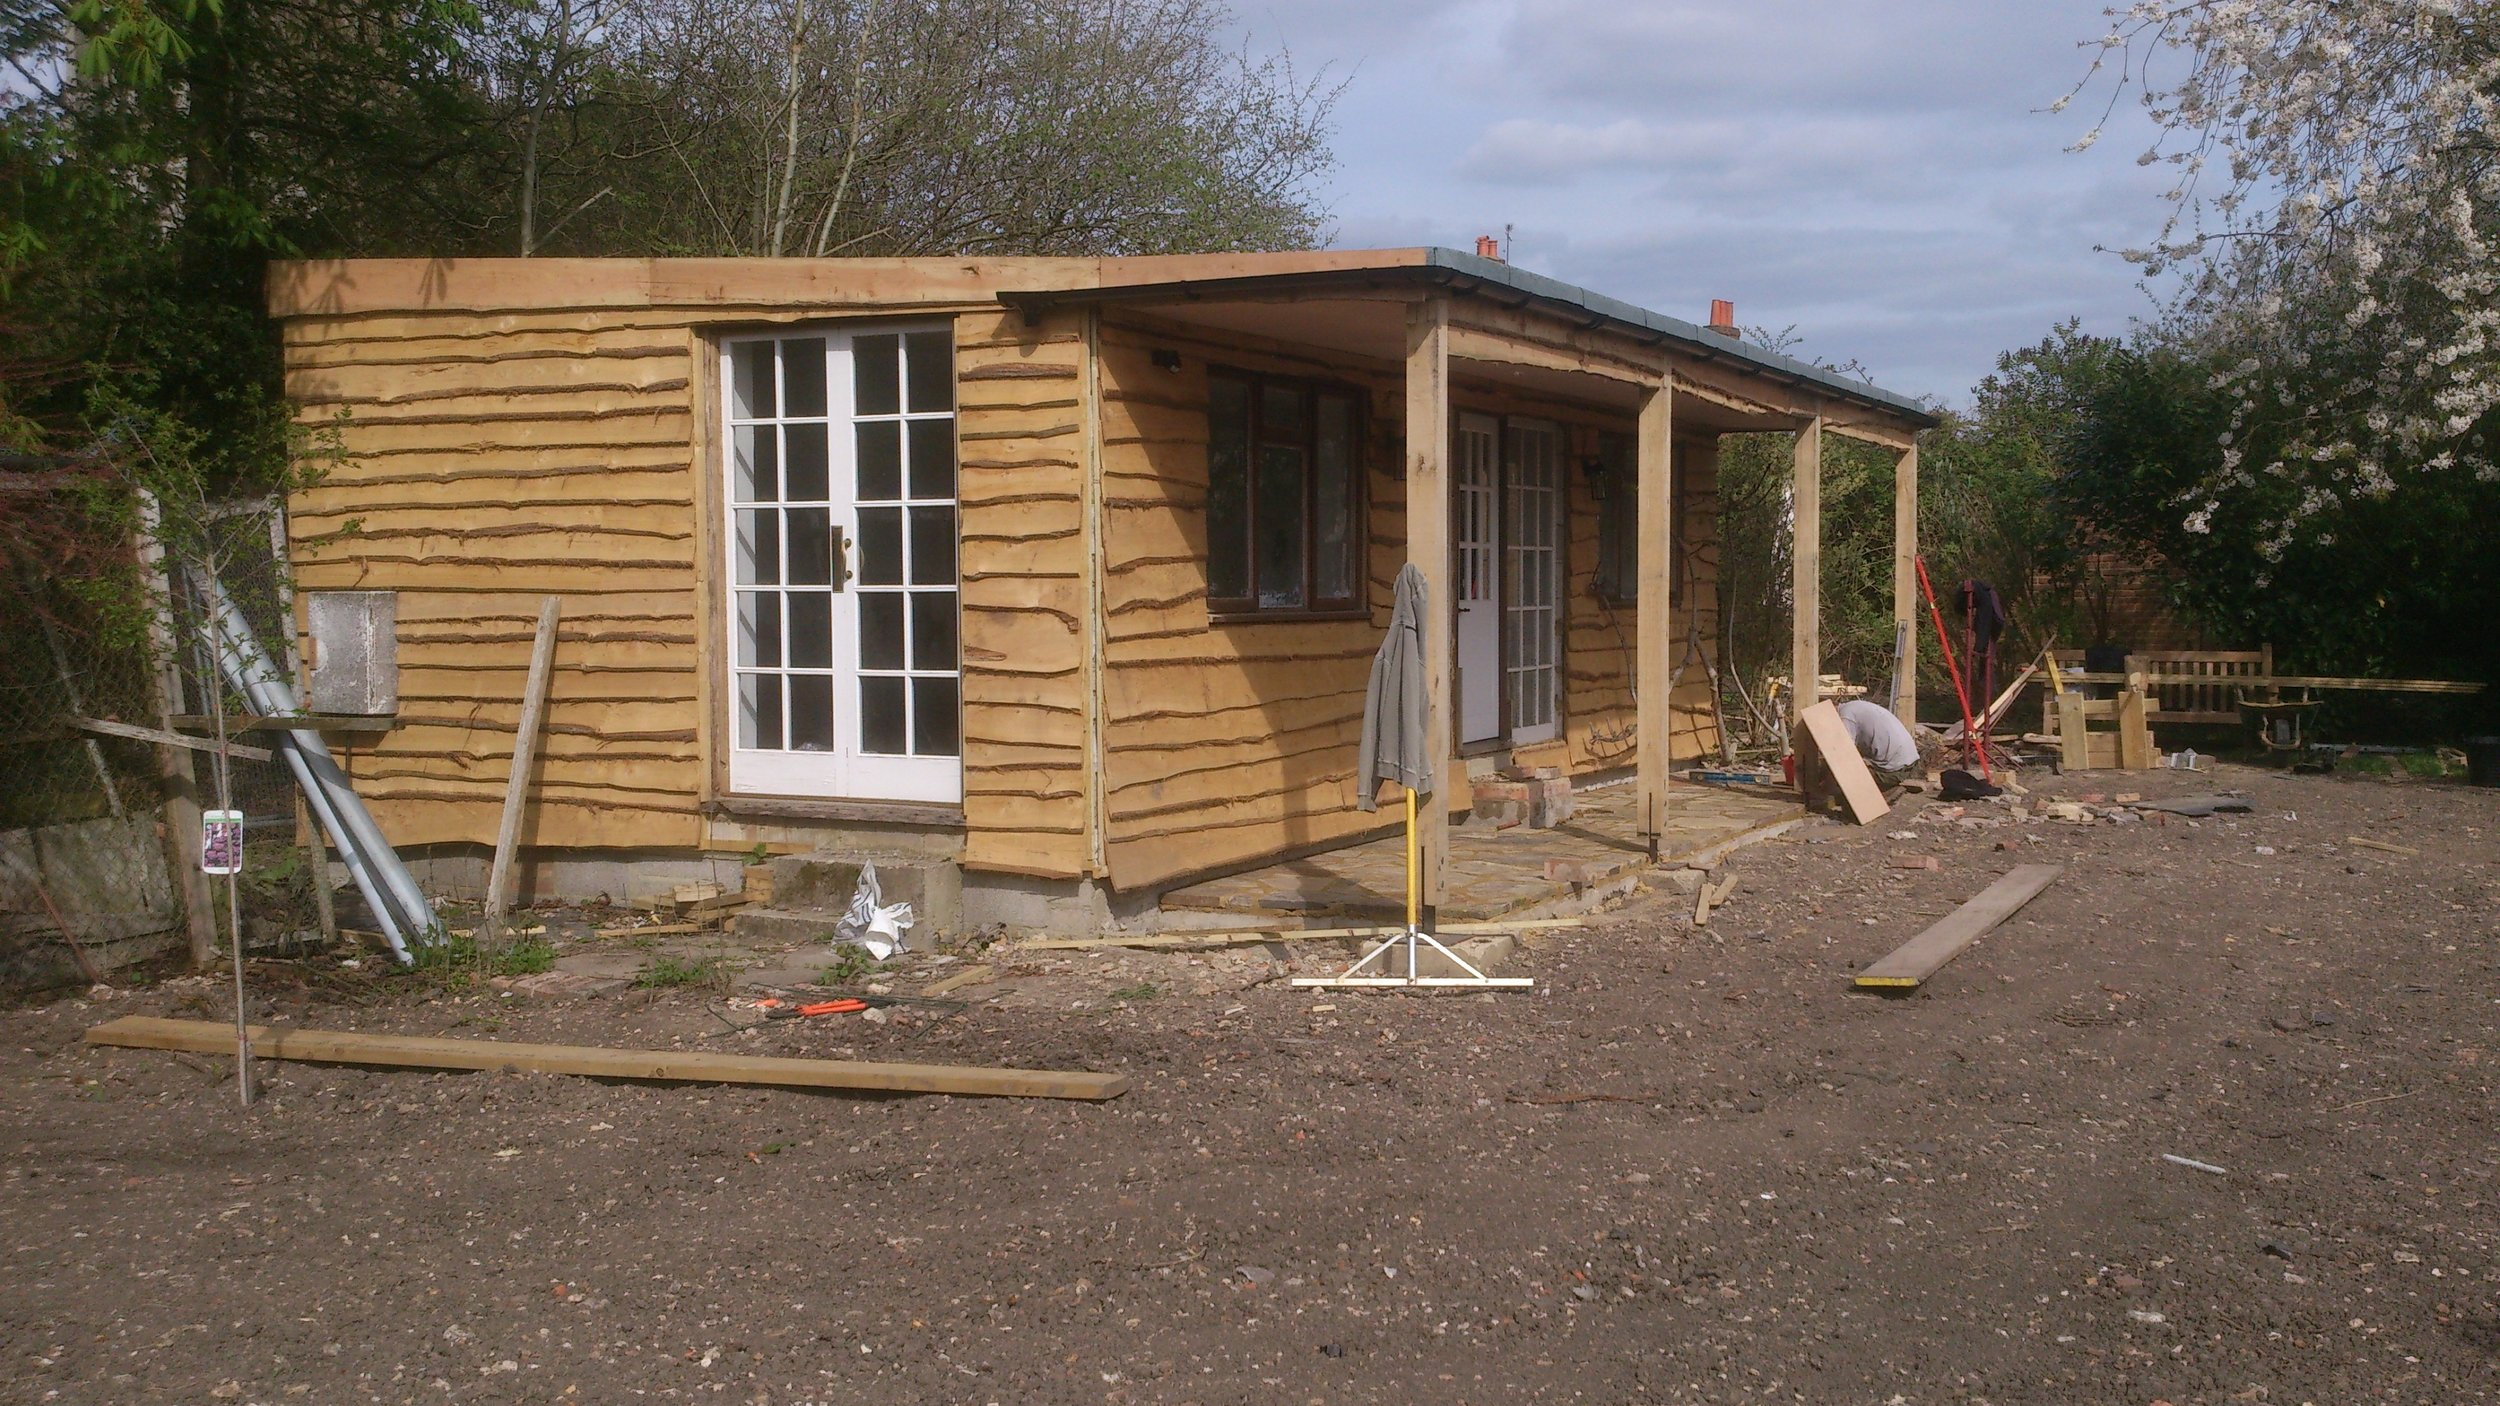 The renovated 'talking' shed with new porch and windows over looking the meadow.